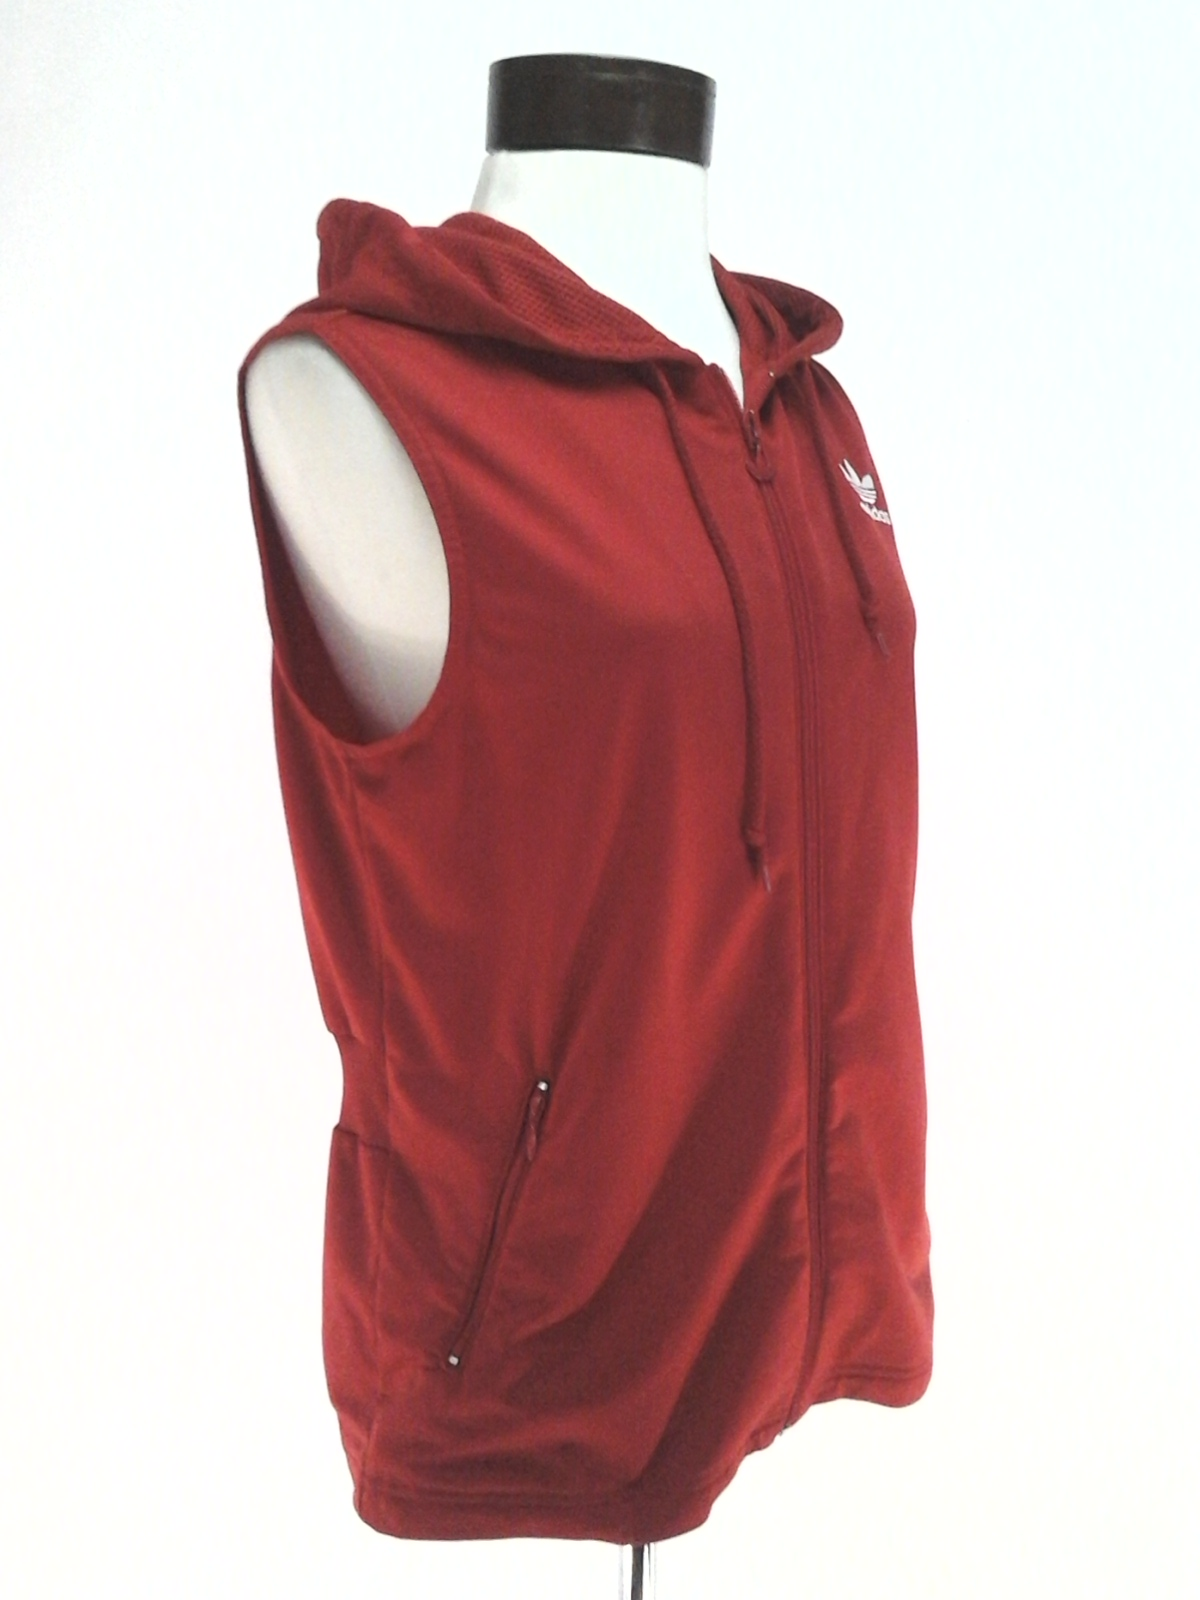 32a73e579926 Details about ADIDAS Sleeveless Hoodie Jacket Red Zip Vest Embroidered  Trefoil Women s M RARE